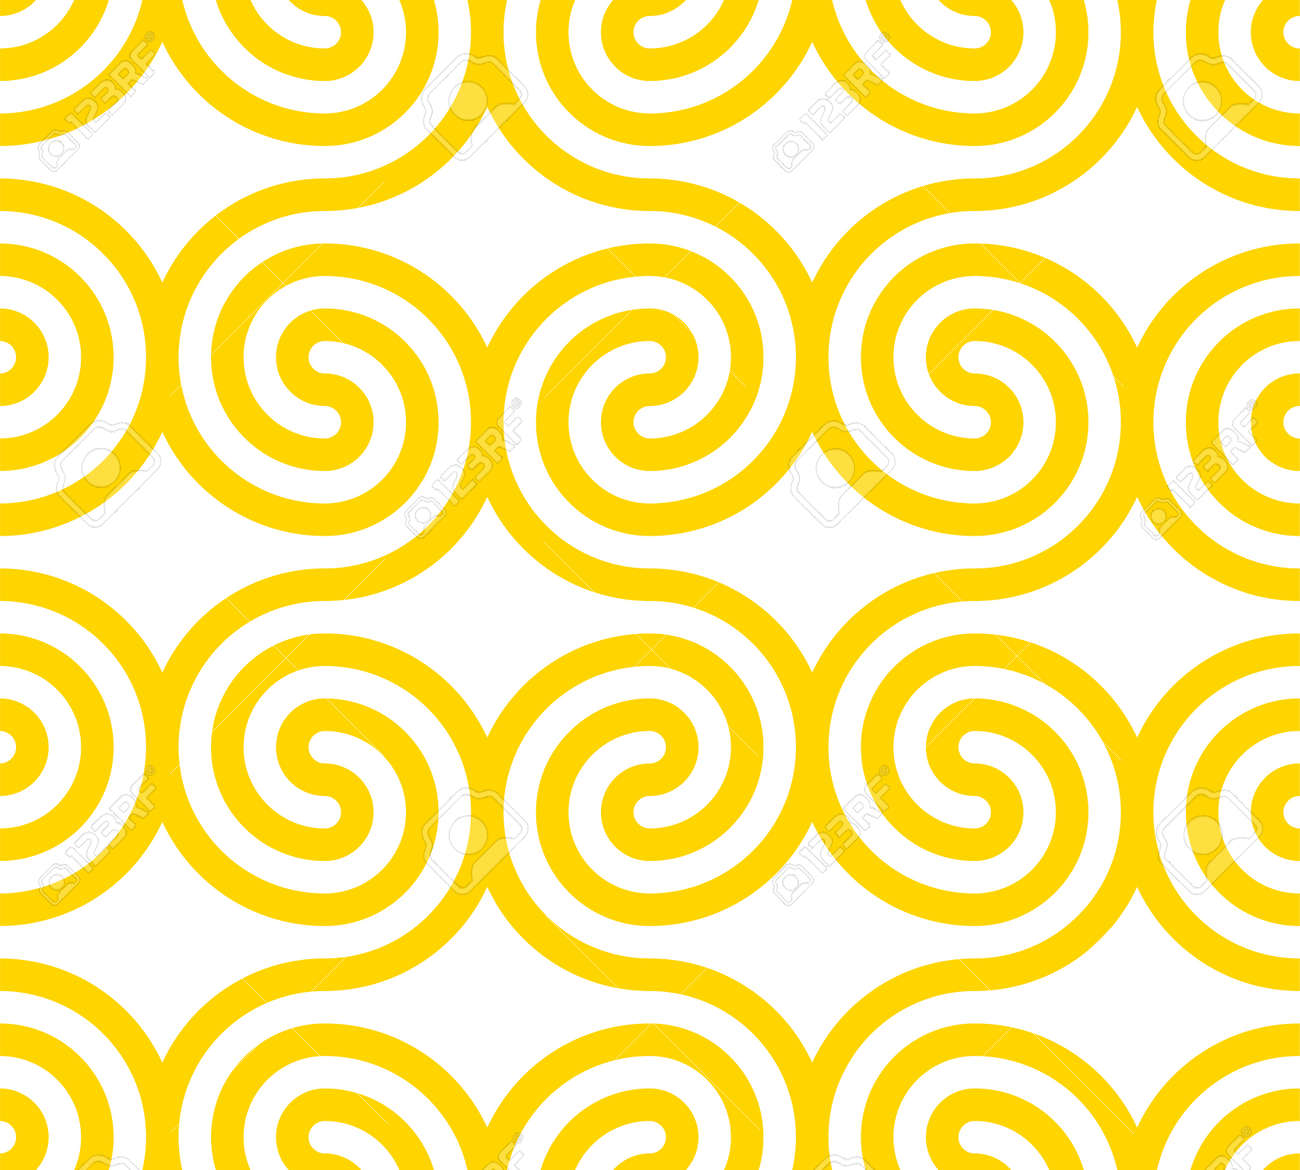 Vector yellow geometric pattern. Seamless pattern with rounded shapes. - 146471814